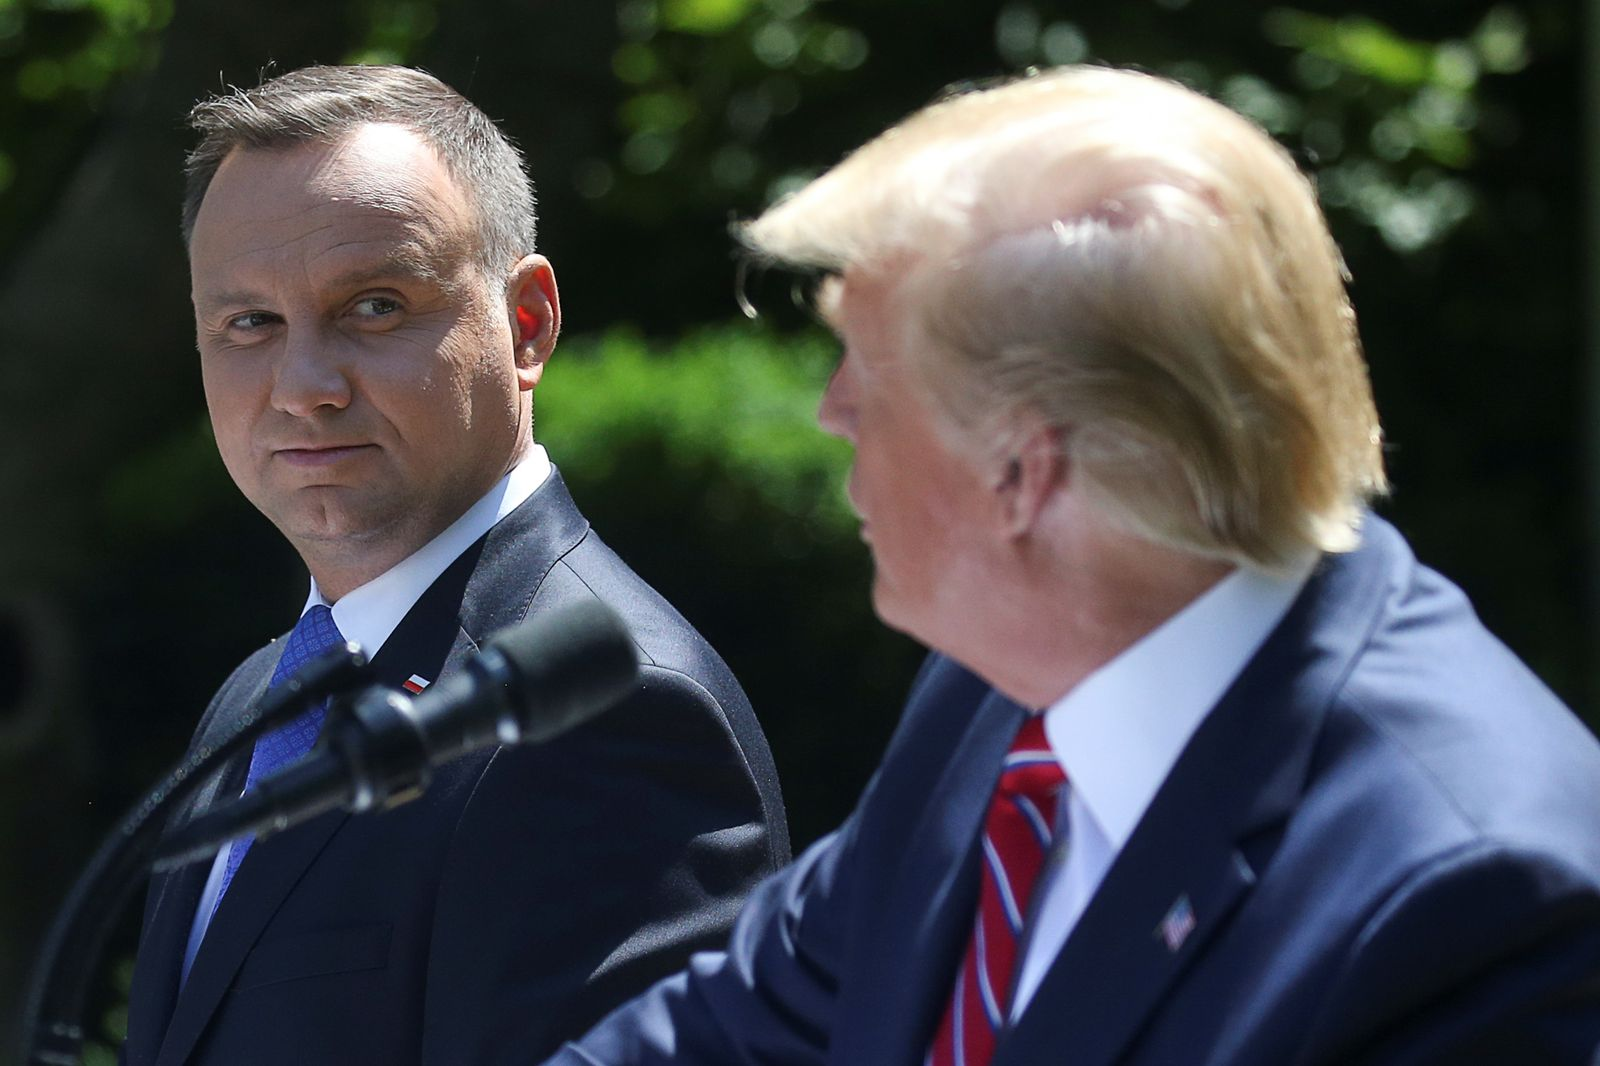 U.S. President Trump and Poland's President Duda hold joint news conference at the White House in Washington